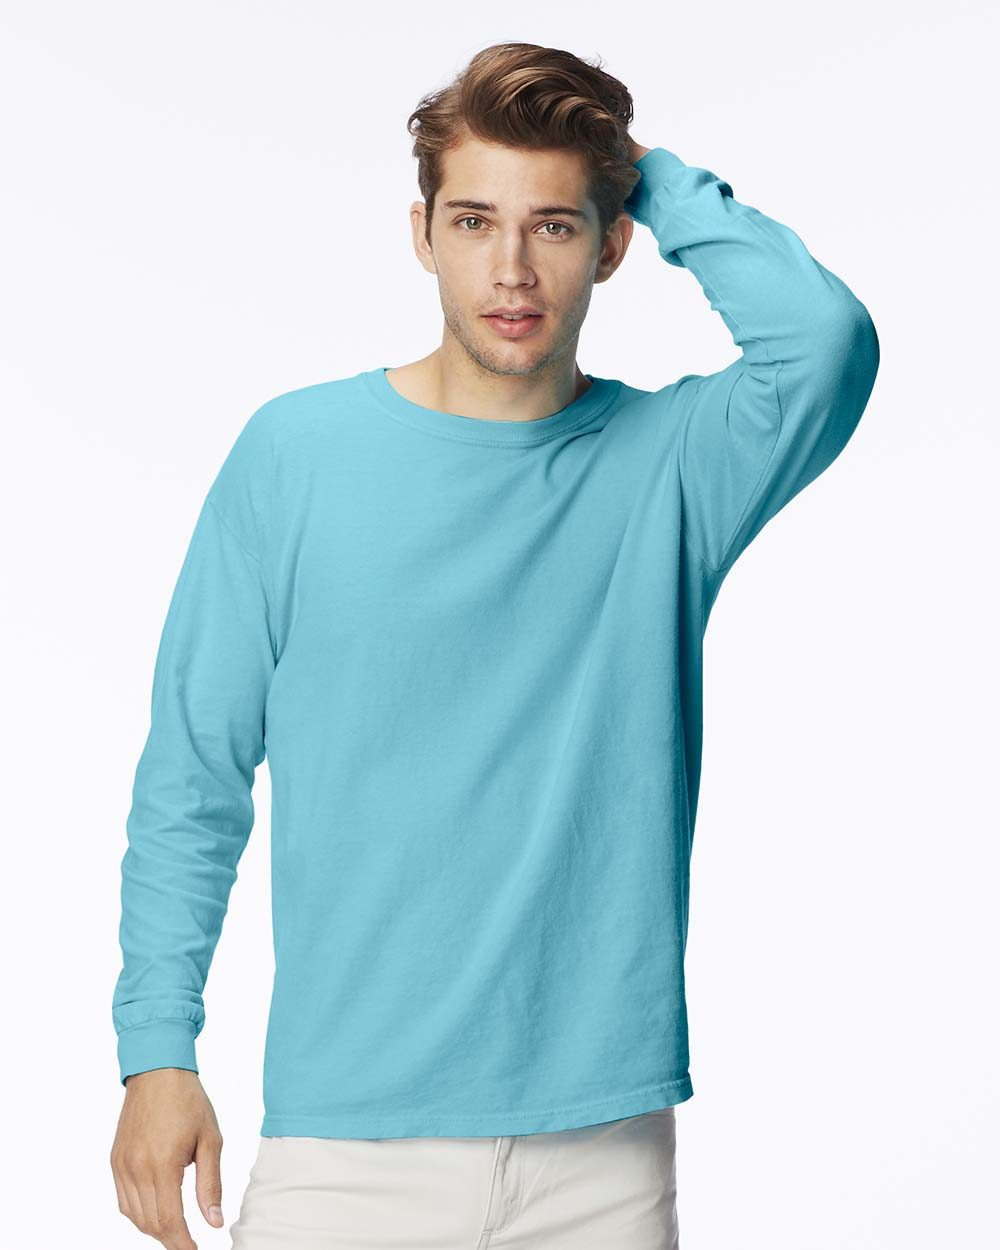 Comfort Colors C5014 - 5.5 oz. Ringspun Garment-Dyed Long-Sleeve T-Shirt